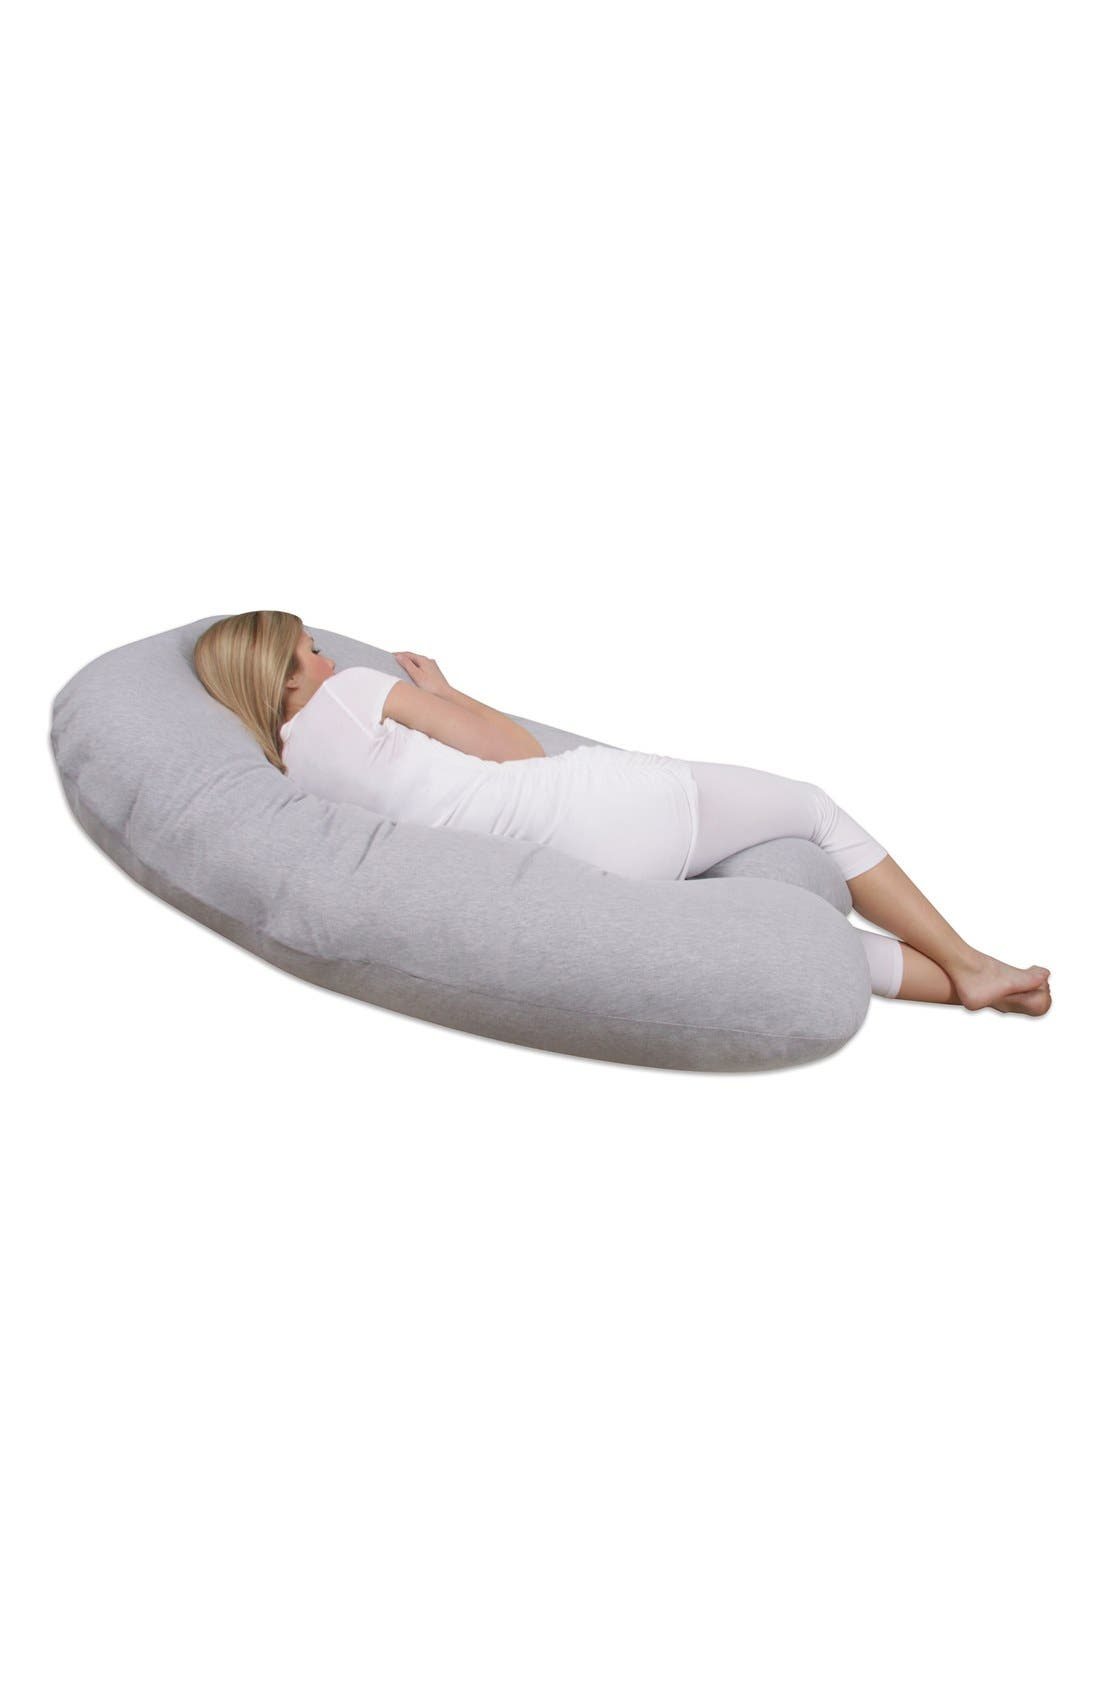 'Back 'N Belly<sup>®</sup> Chic' Contoured Pregnancy Support Pillow with Jersey Cover,                             Alternate thumbnail 3, color,                             HEATHER GREY